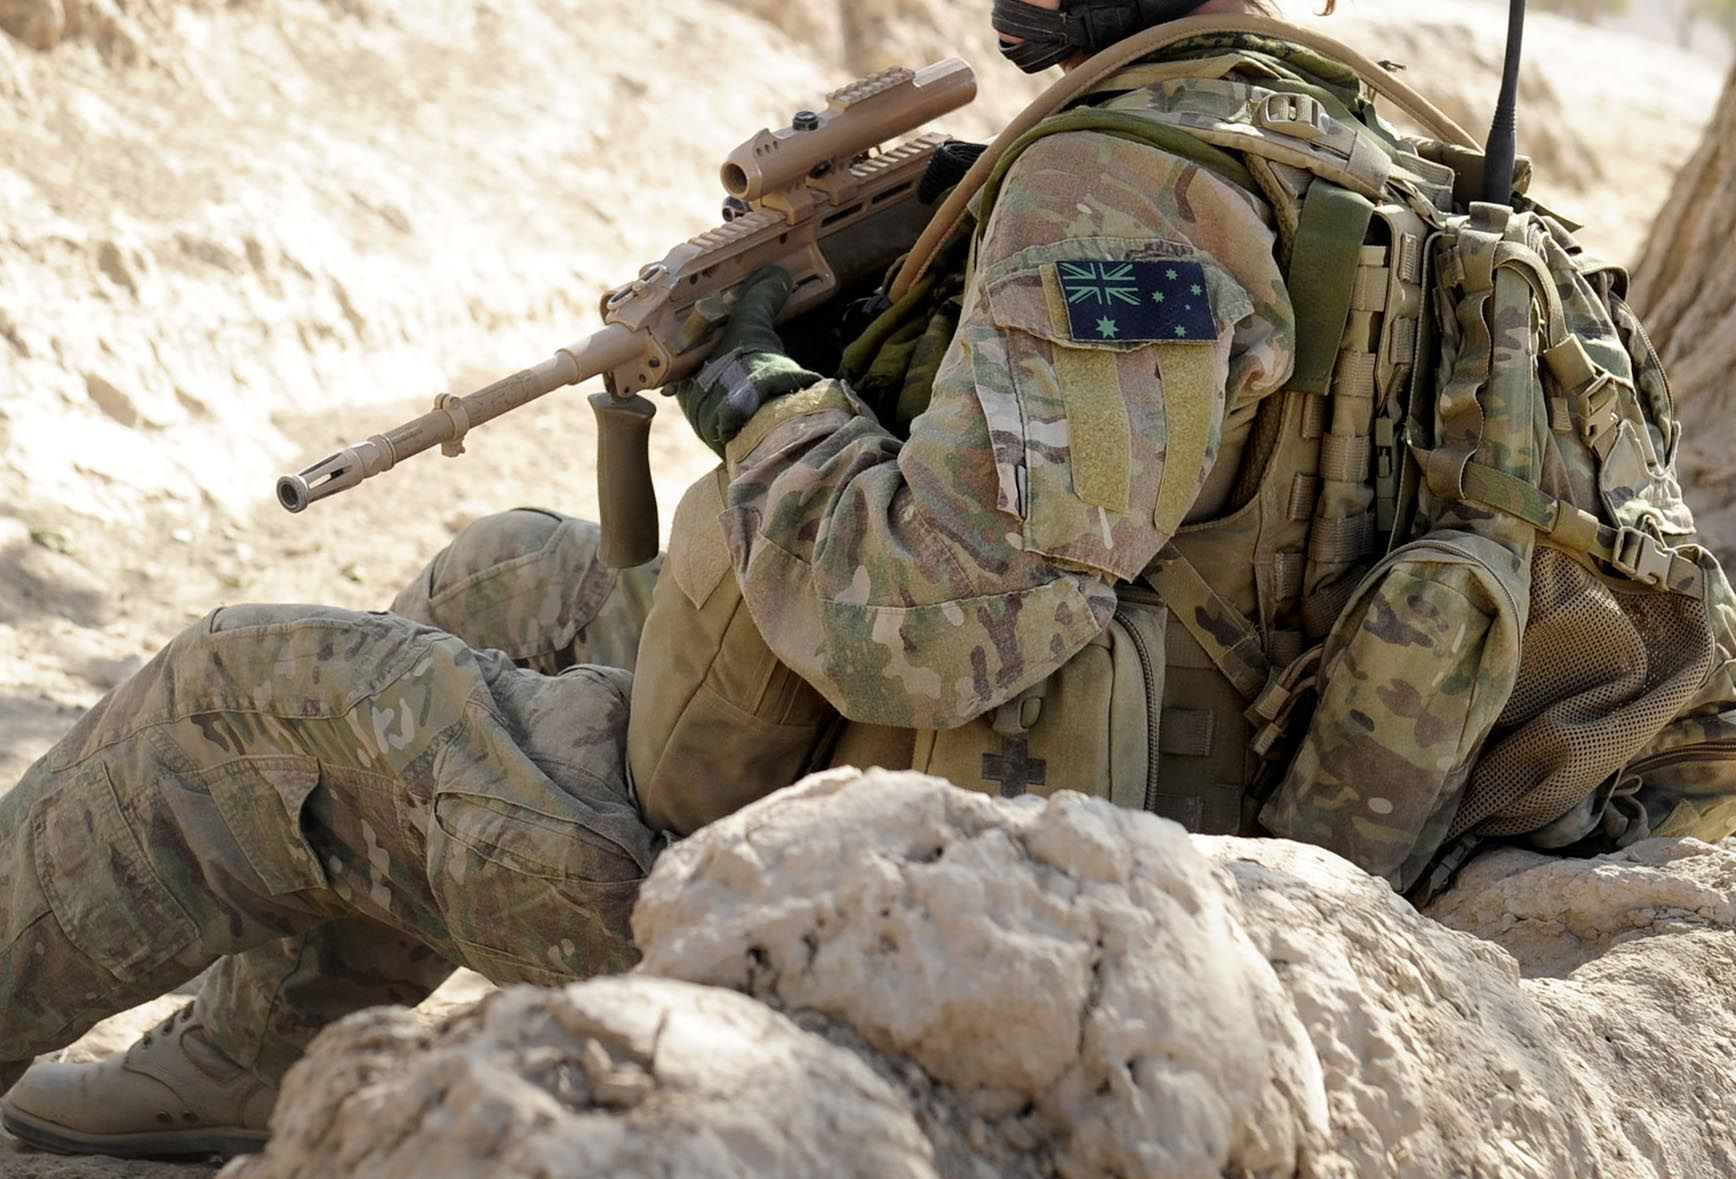 Former soldier to prosecute cases of alleged war crimes by